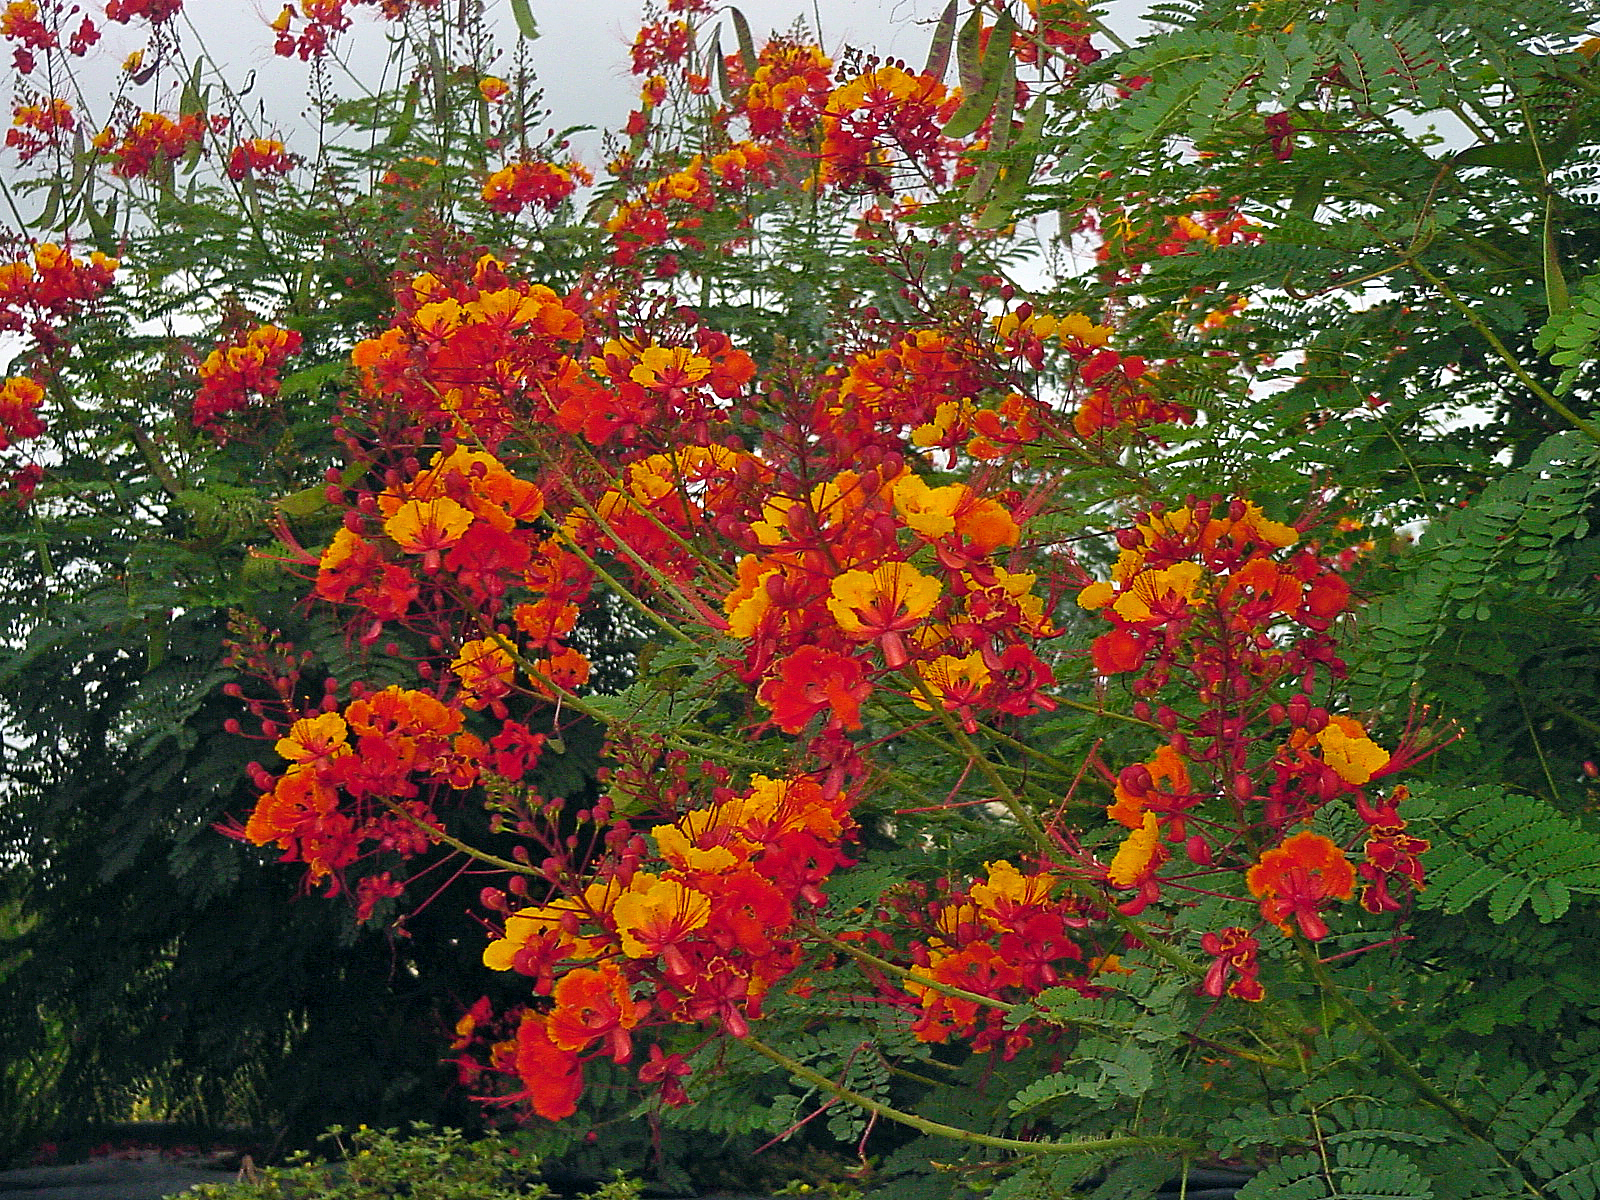 The Pride Of Barbados Becomes Texas